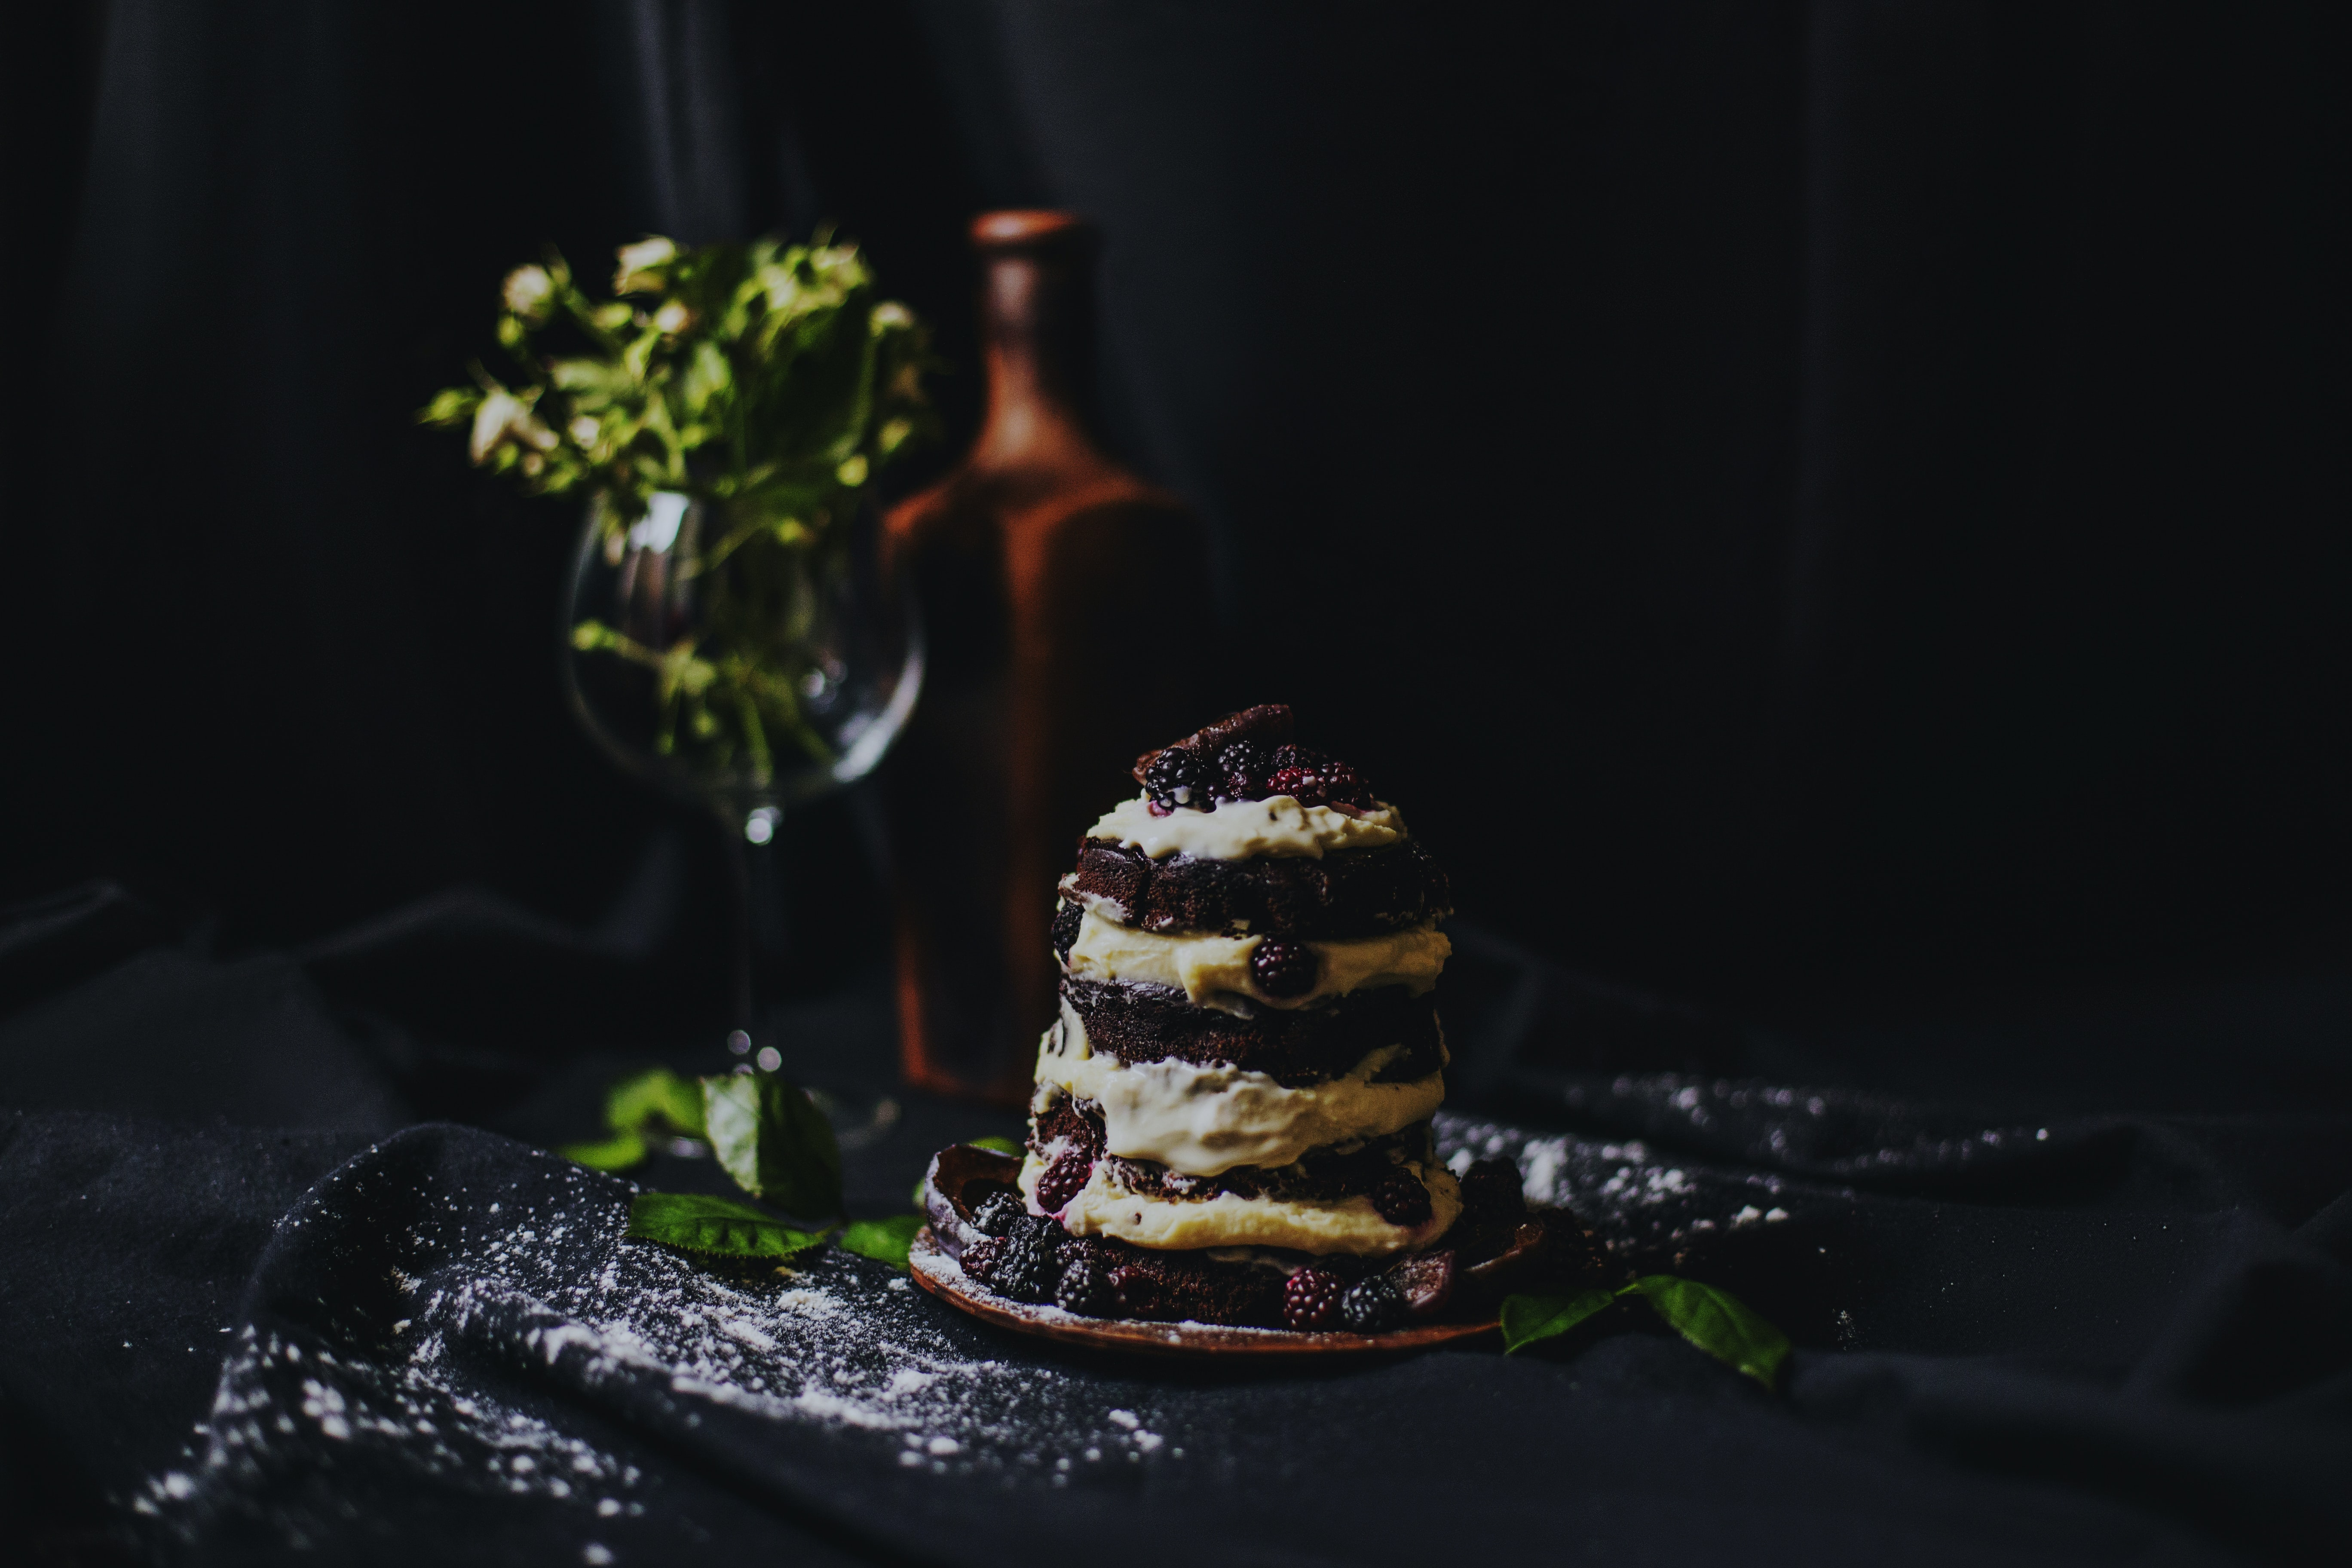 A tall cake and flowers on a table.